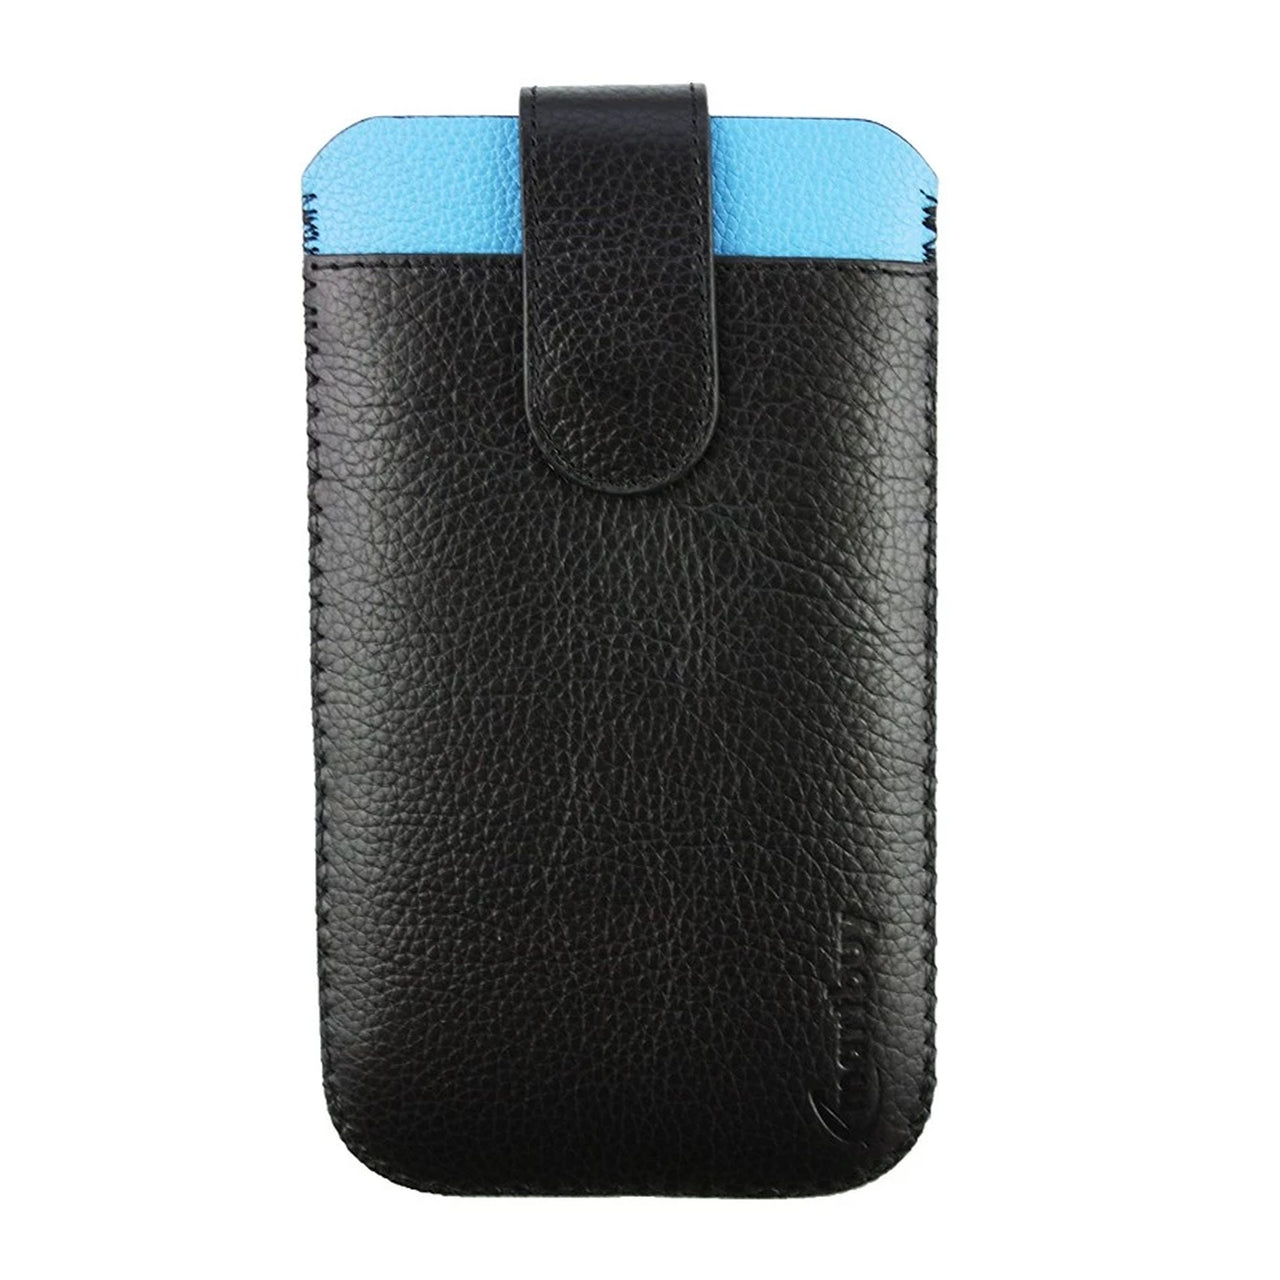 Genuine Leather Universal Phone Pouch - Black Blue